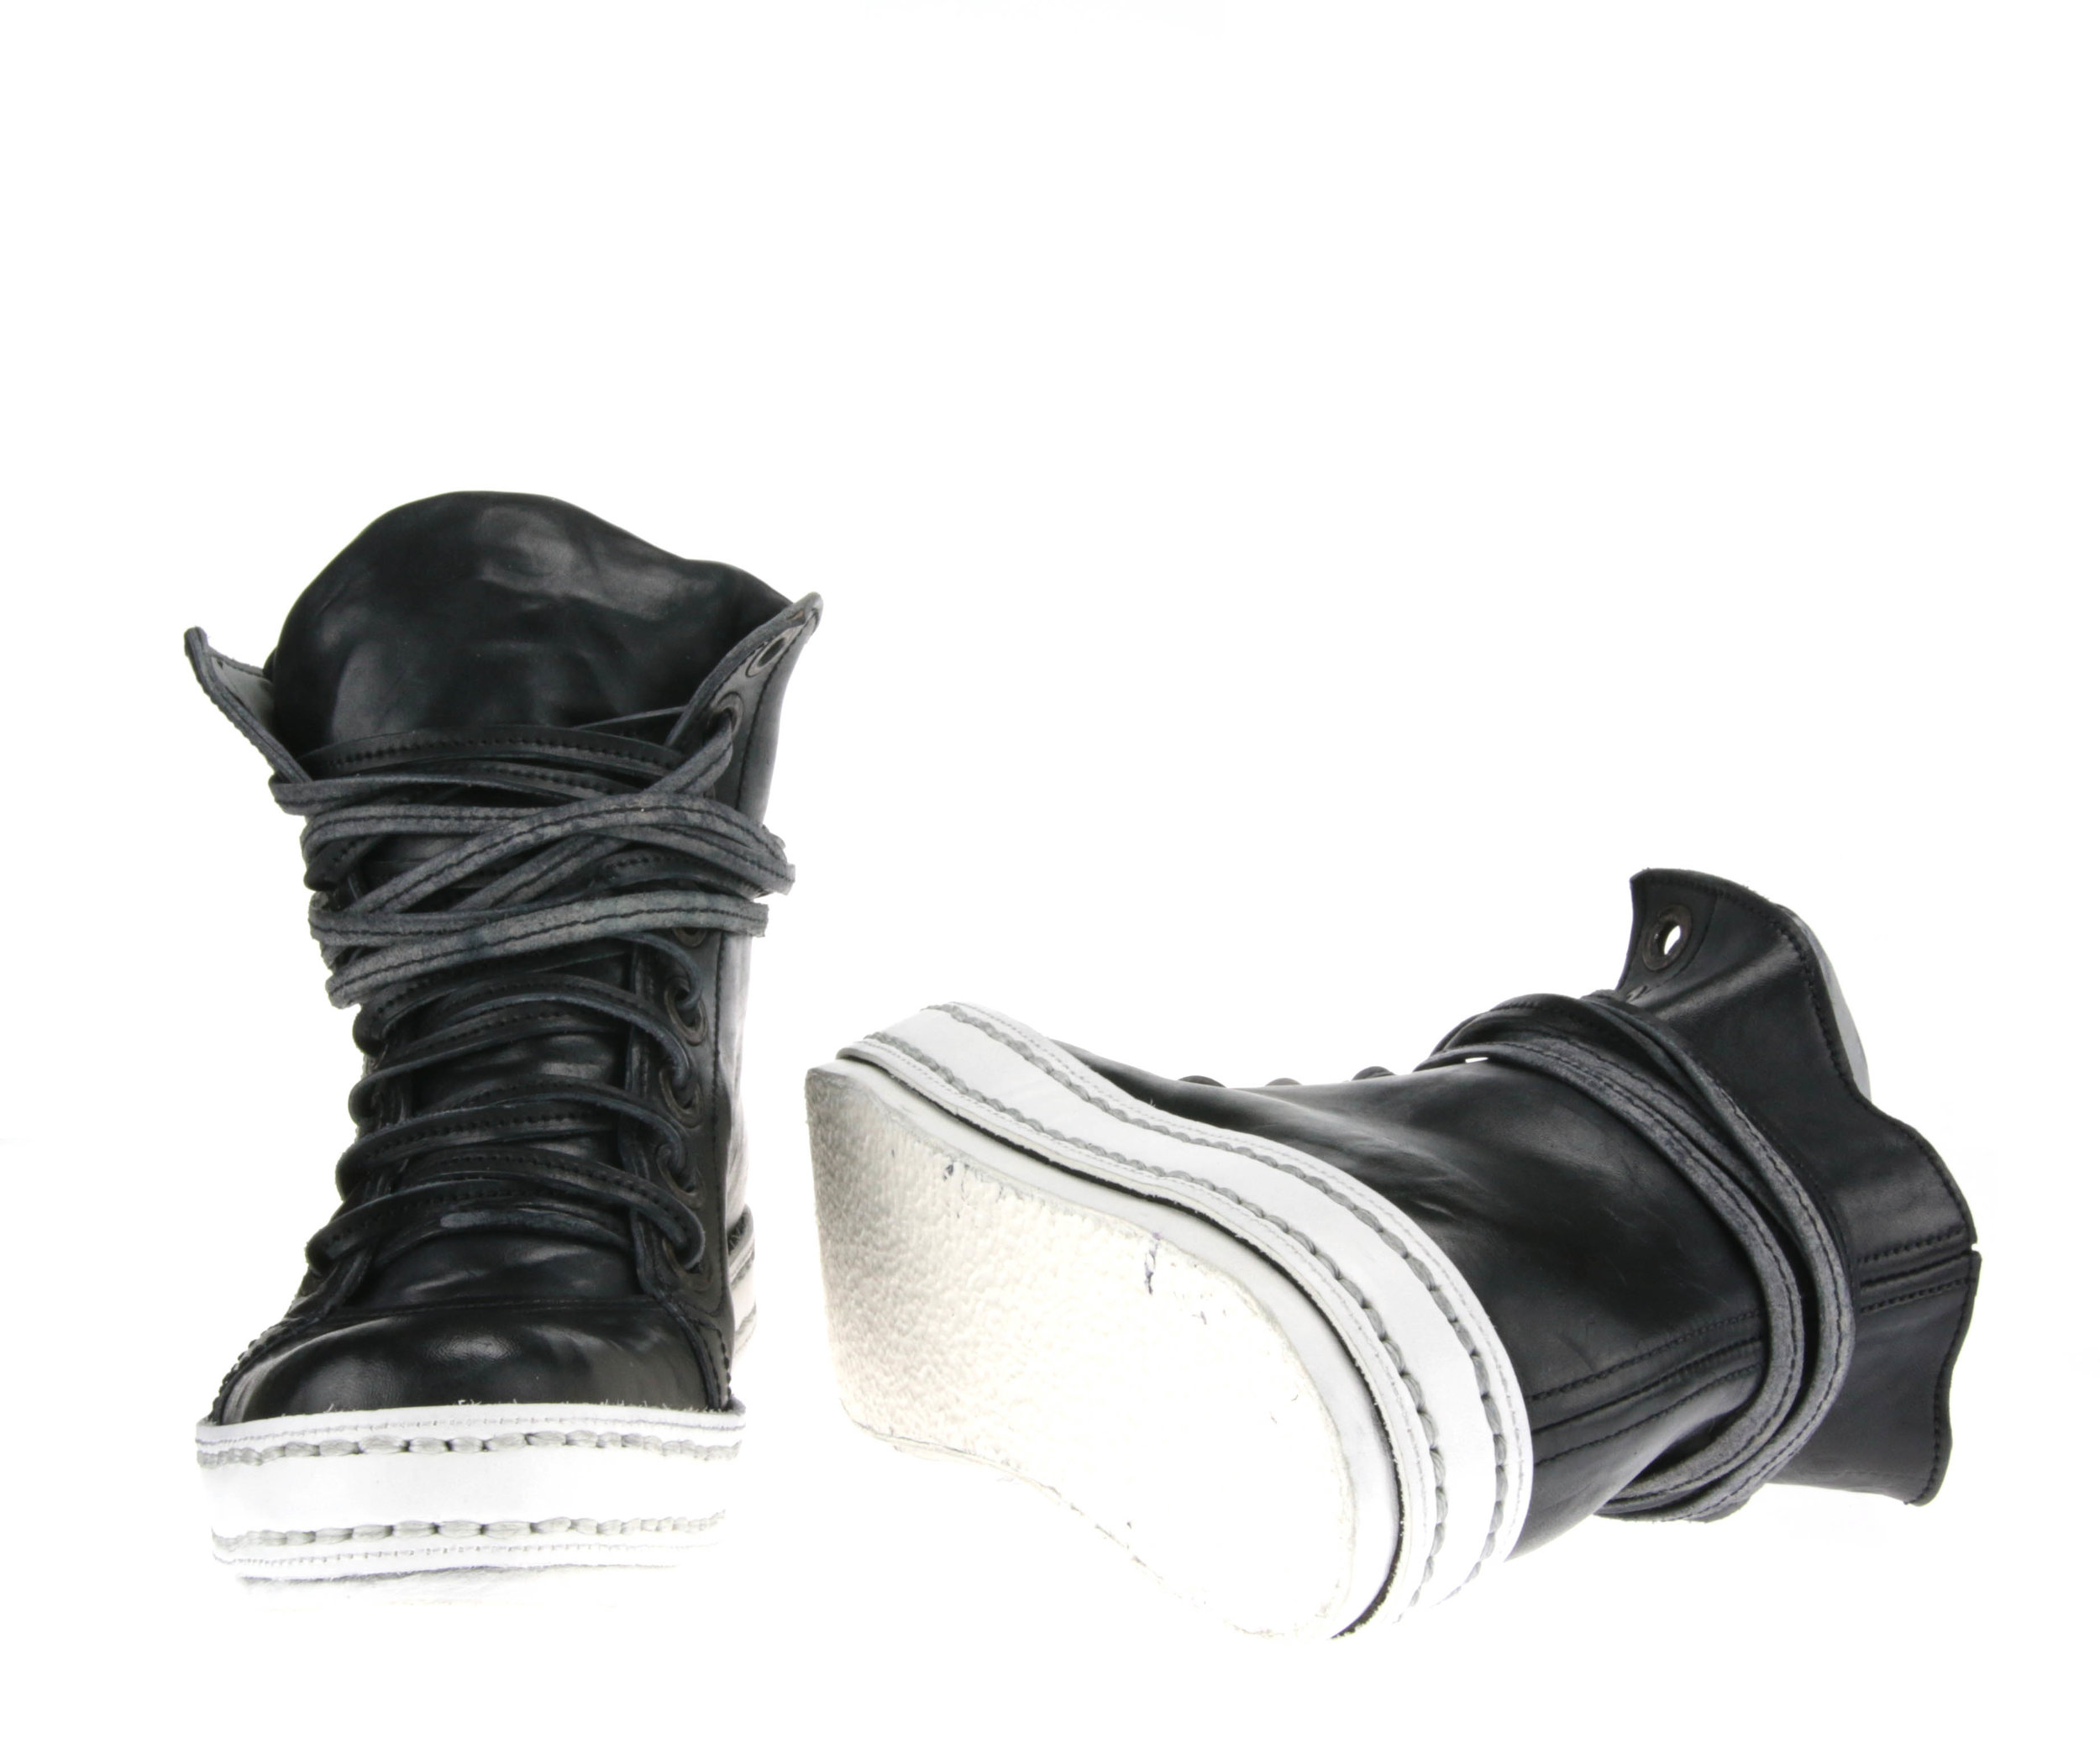 8Hole Black and White front sole.jpg